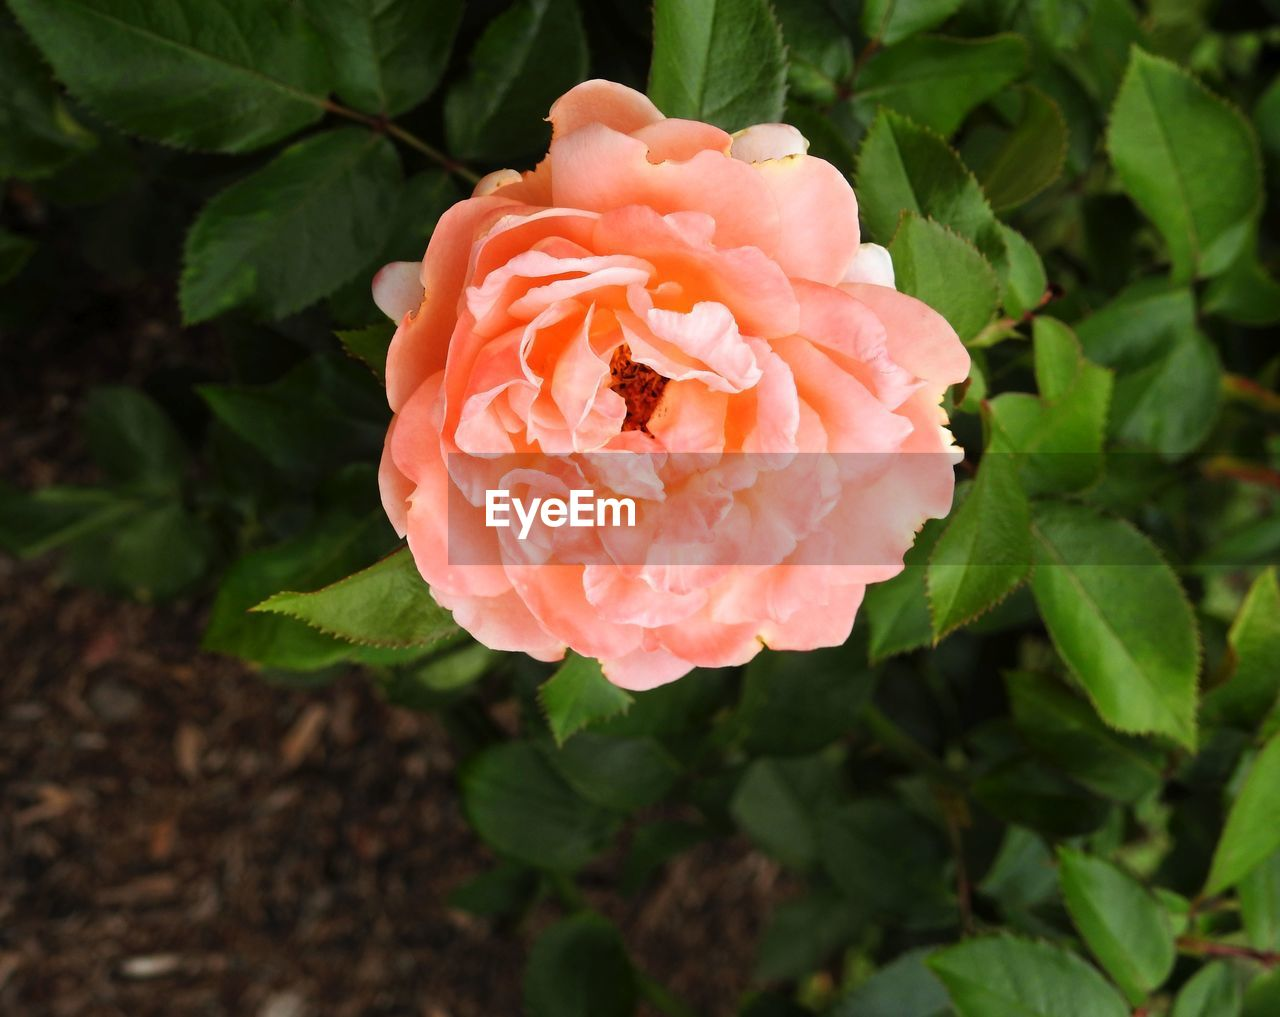 petal, flower, growth, leaf, plant, flower head, nature, beauty in nature, no people, green color, fragility, rose - flower, focus on foreground, pink color, blooming, freshness, close-up, day, outdoors